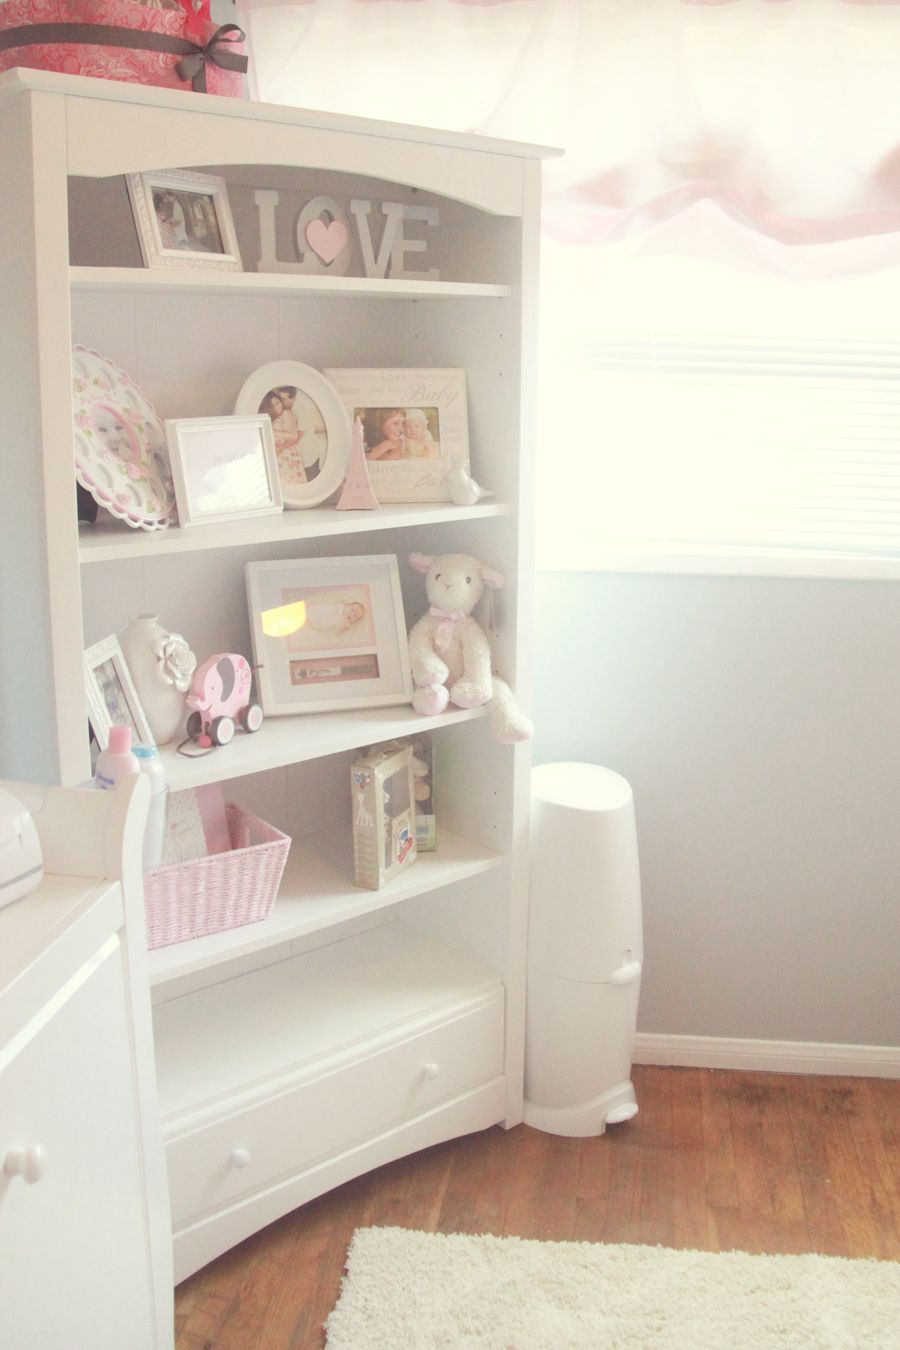 Would Like A Bookshelf Similar To This For Her Room